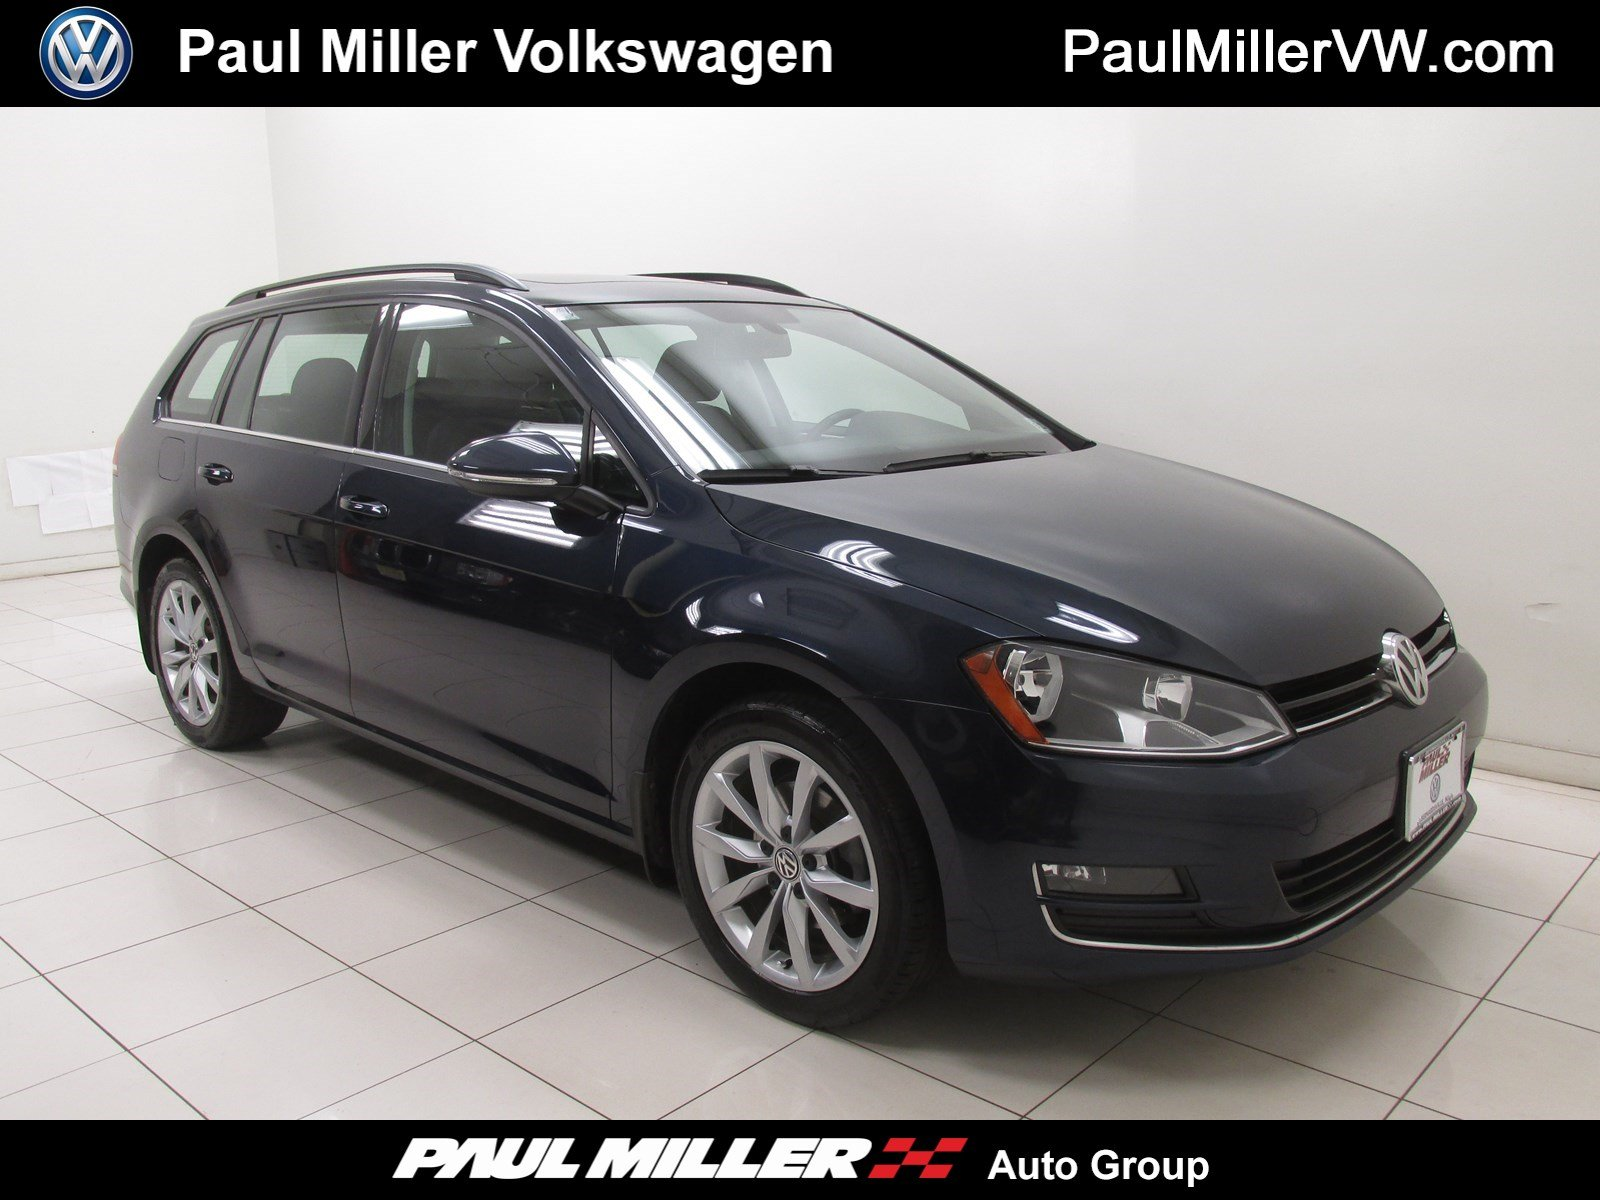 Certified Pre Owned 2016 Volkswagen Golf SportWagen TSI SE Station